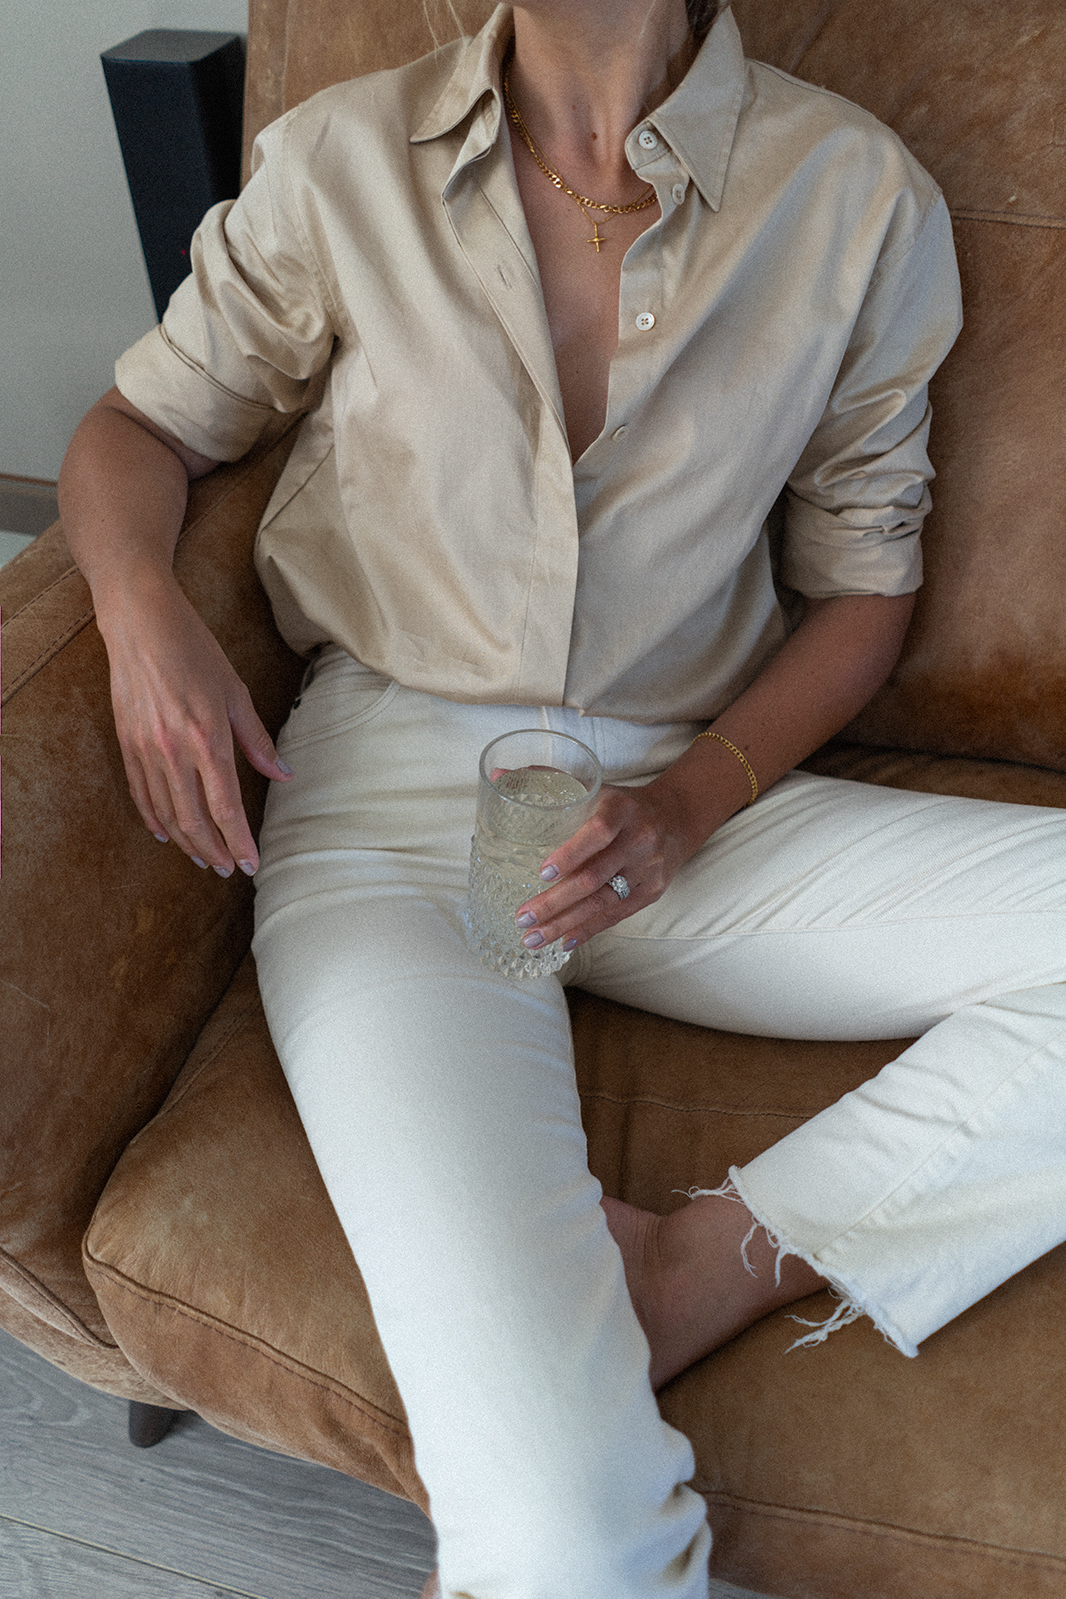 Emma Hill style and home. Beige shirt, gold jewellery, ecru jeans, mid century modern interiors, tan leather sofa